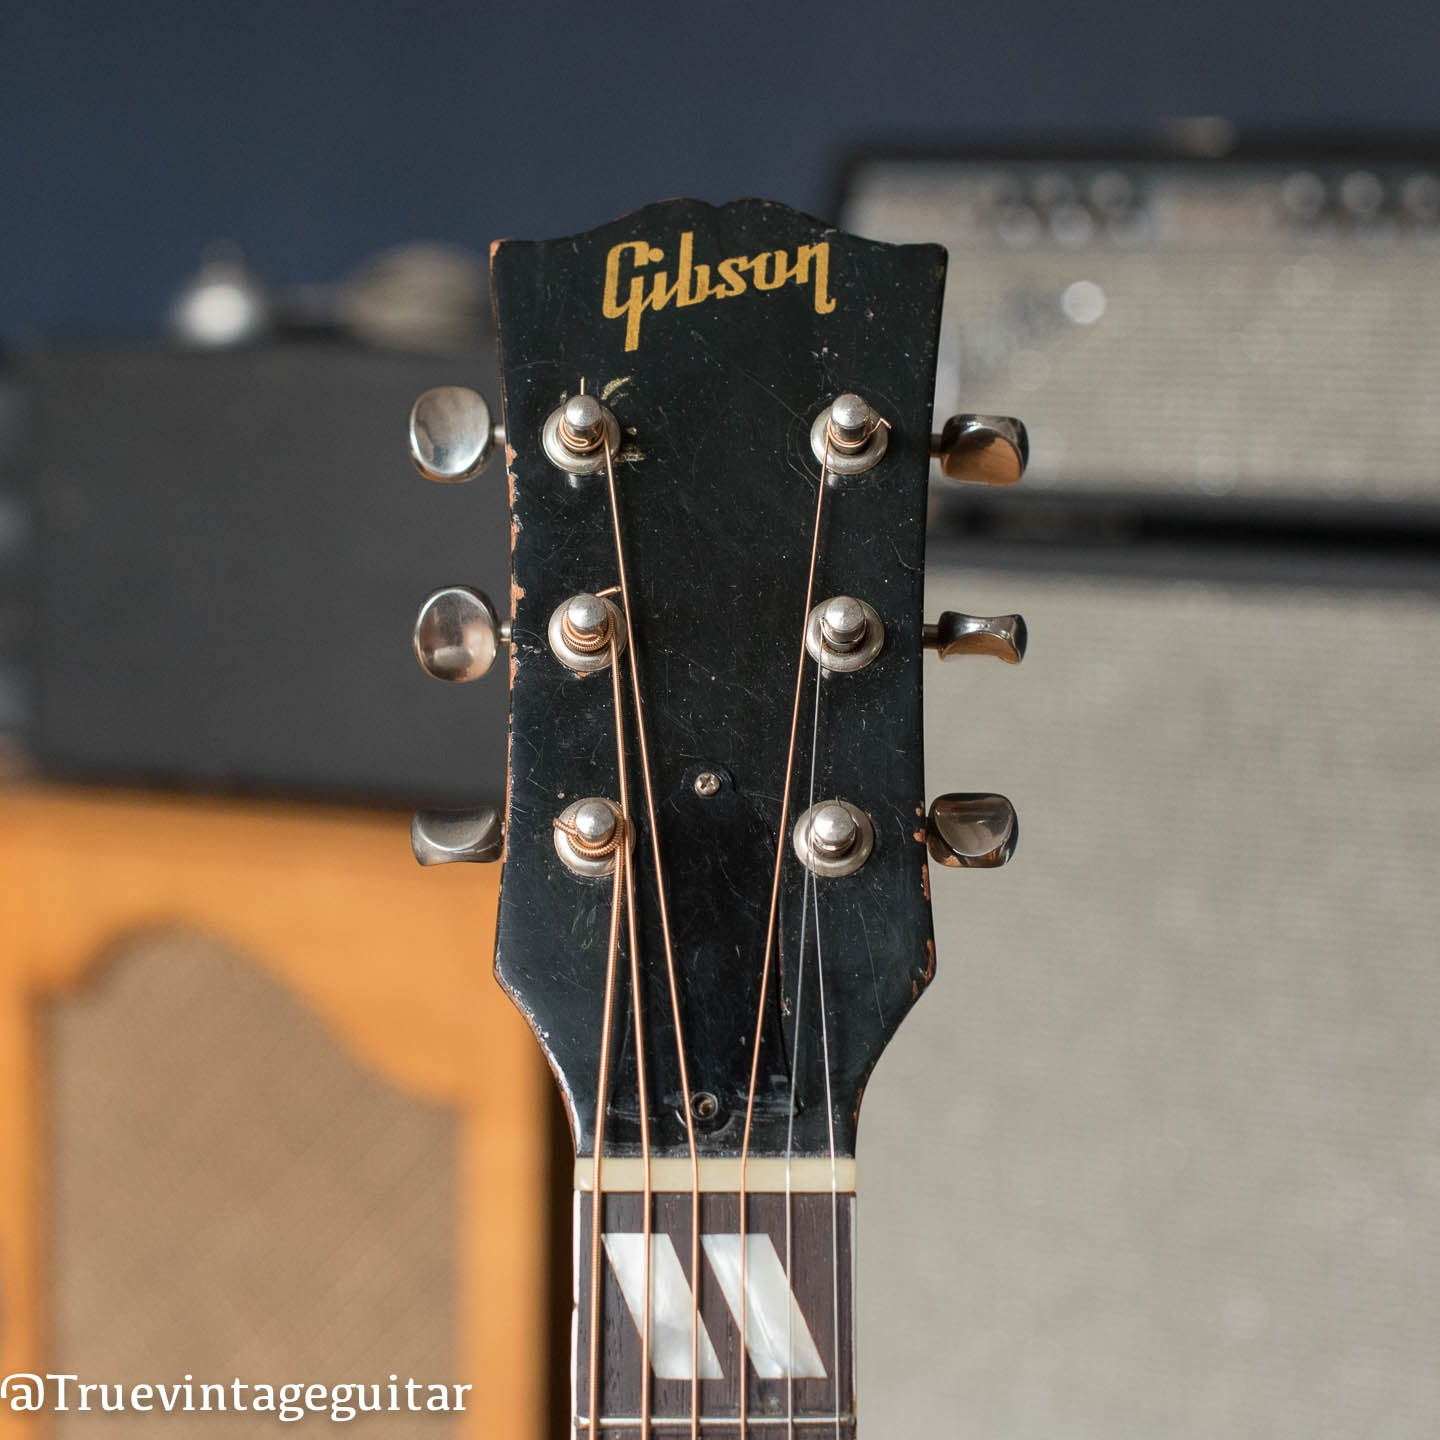 Gibson headstock, 1950s acoustic guitar